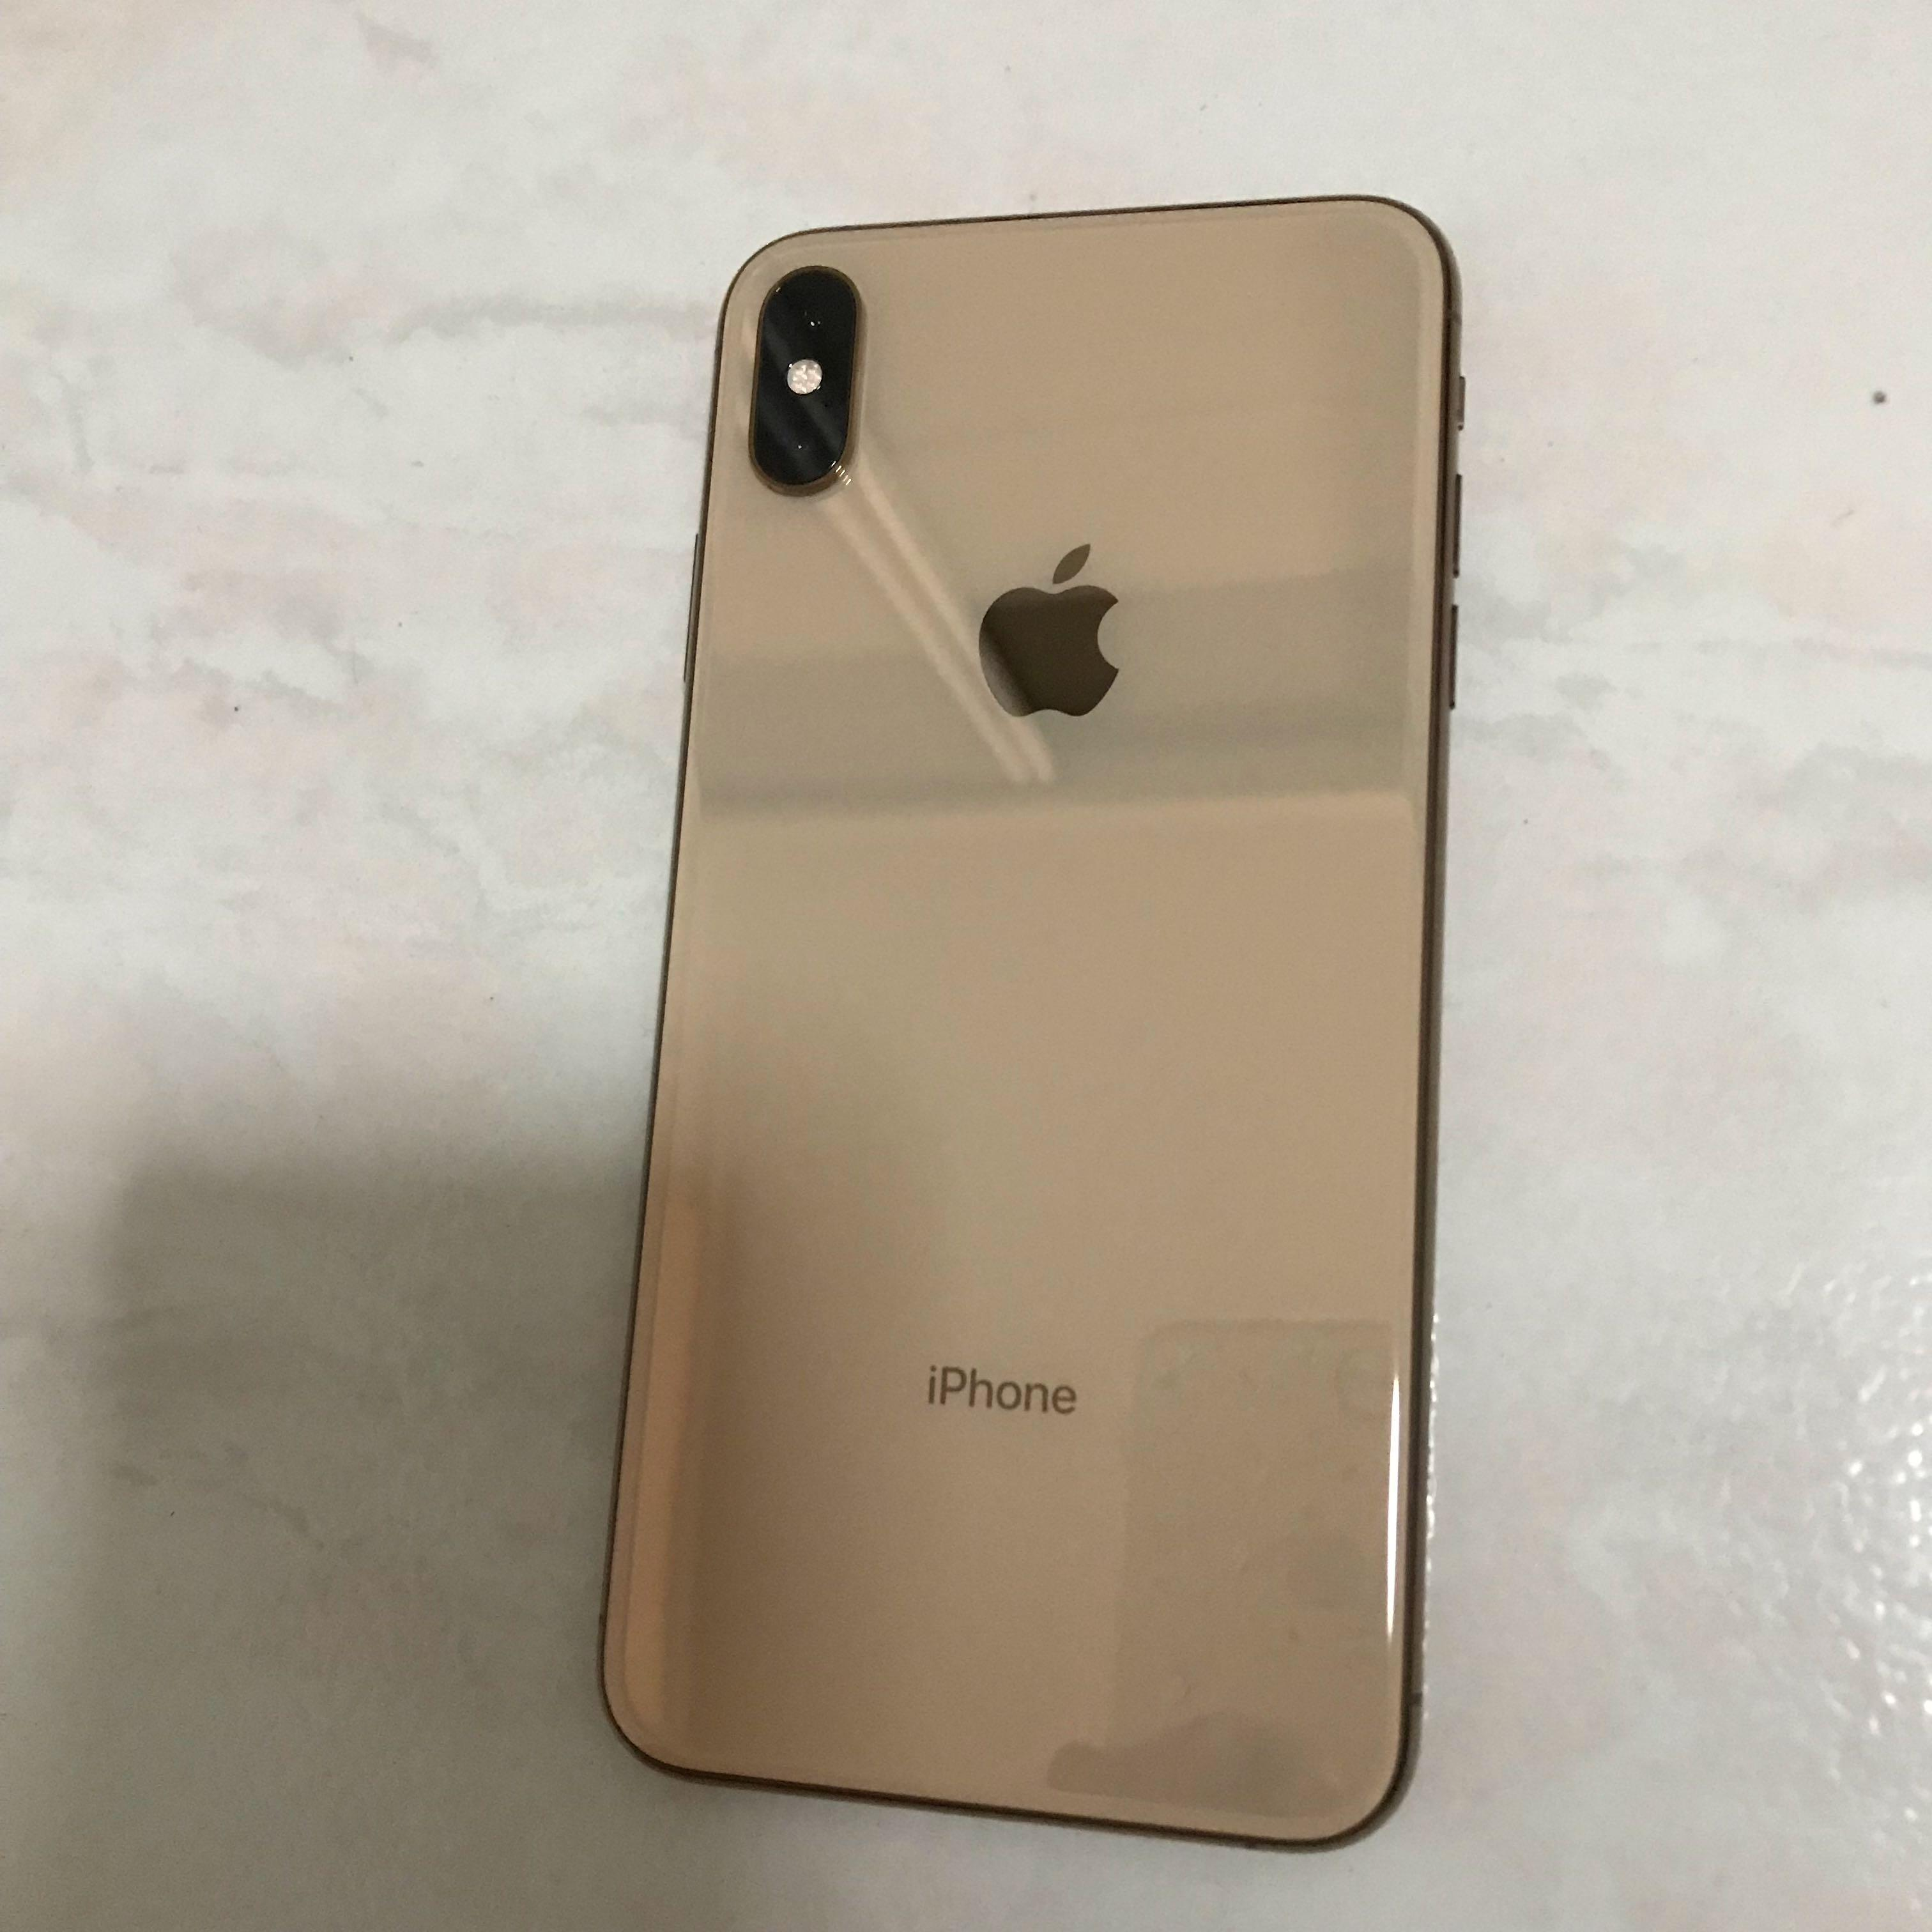 iPhone XS Max (512GB) Gold